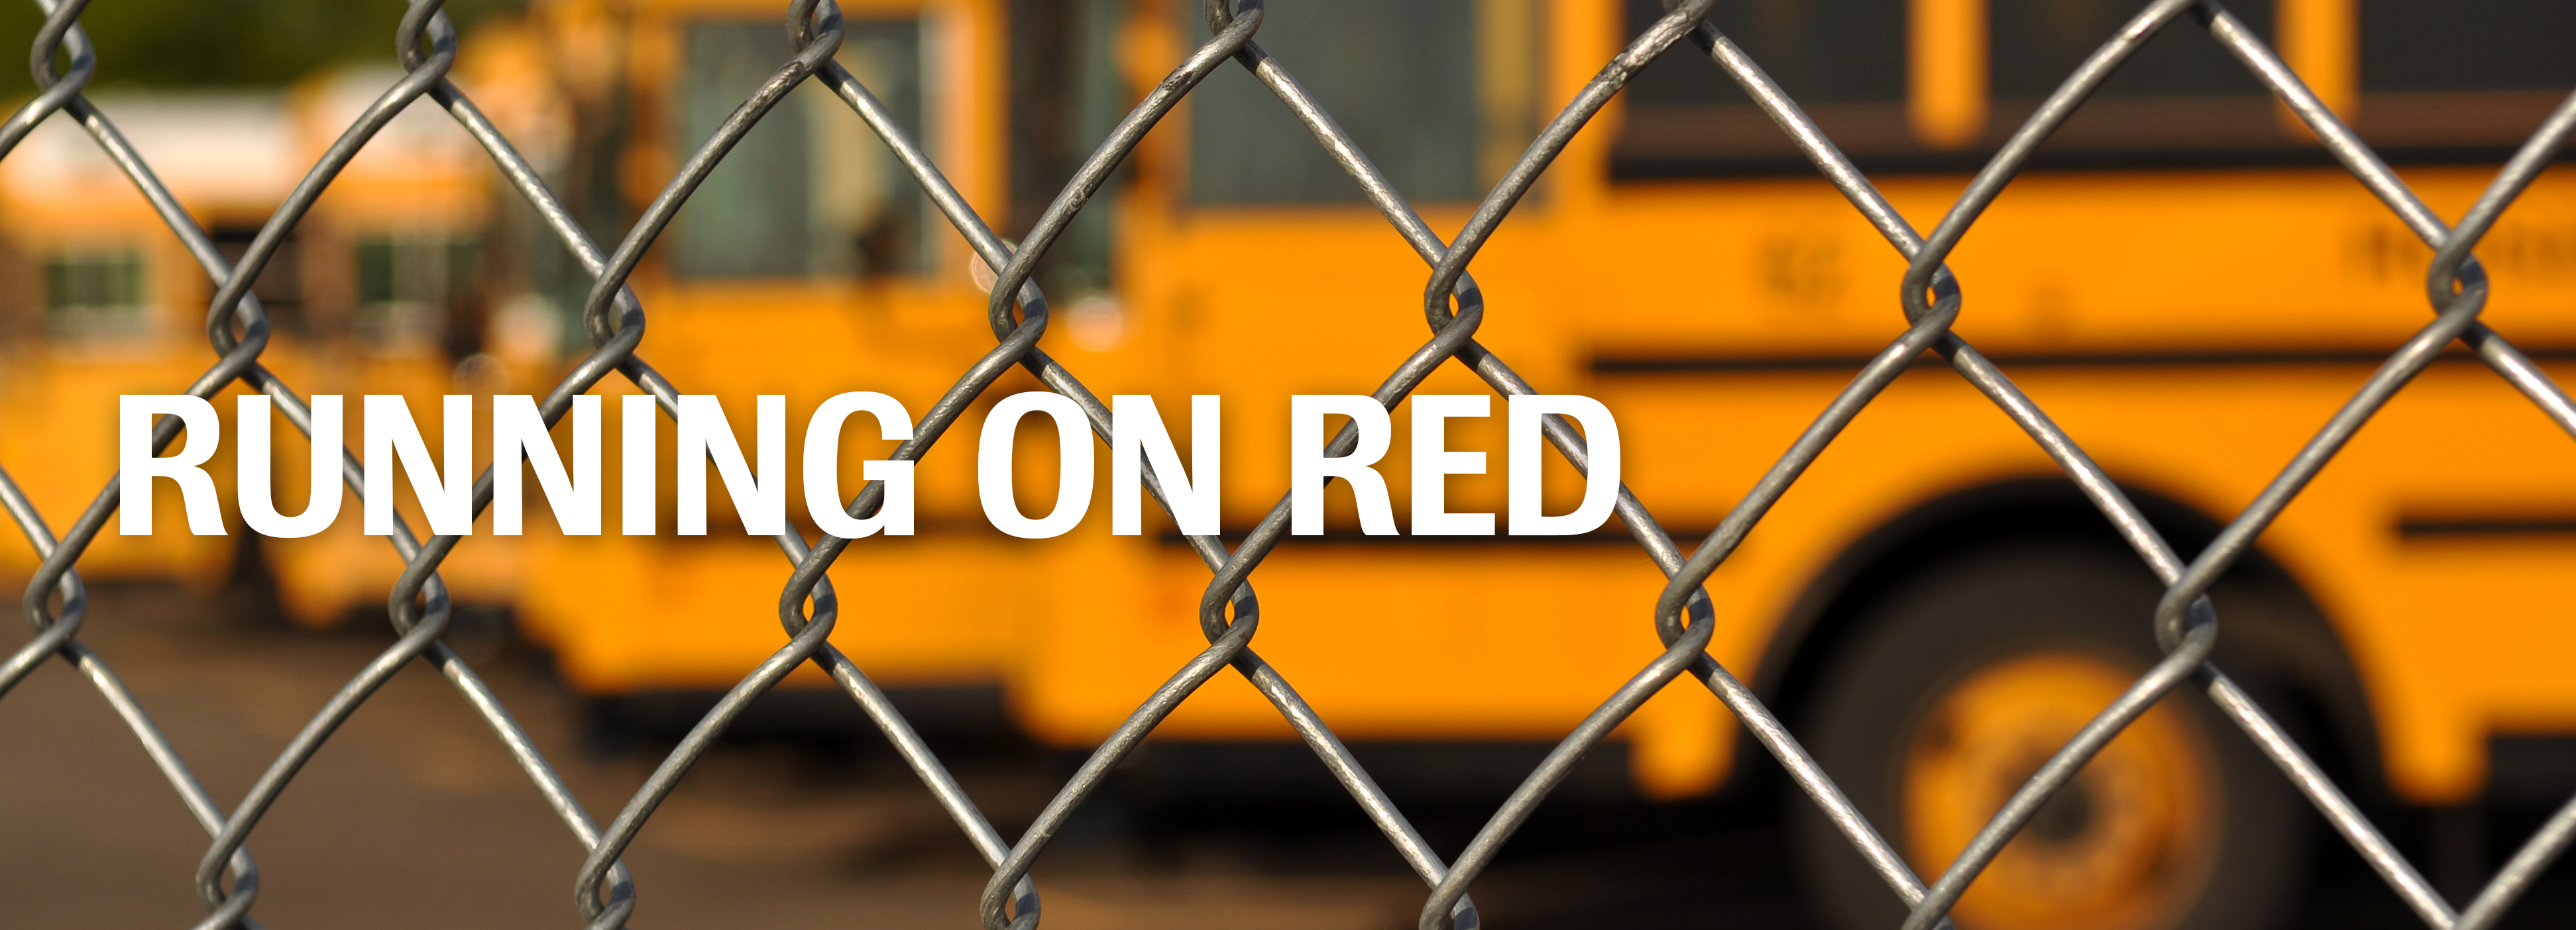 District's bus drivers rack up violations